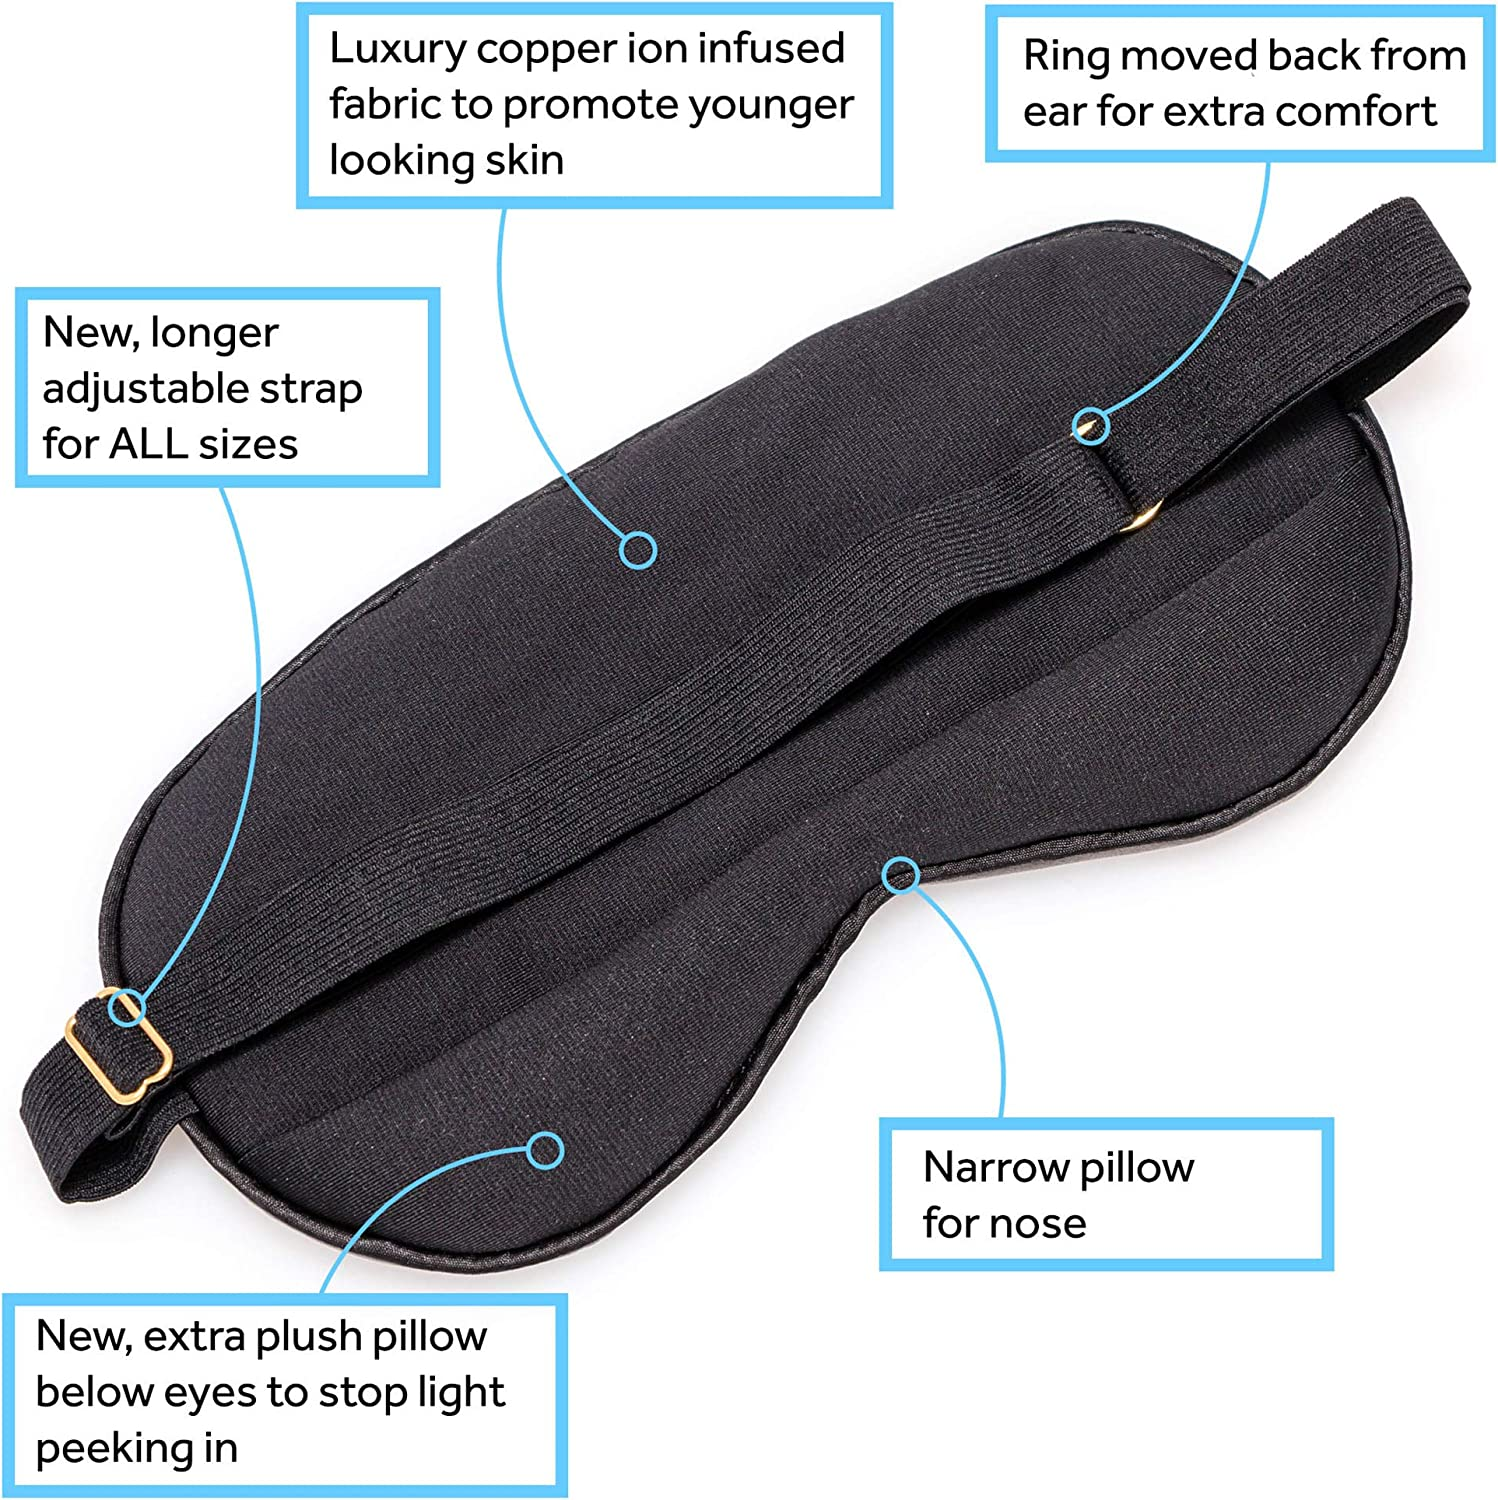 Anti Aging Sleep Mask with Copper Ion Technology by Sleep Fountain Rejuvenates Skin, Reduces Eye Puffiness Super Soft Copper Eye Mask with Unique Blindfold Design in Mulberry Silk Luxury Case